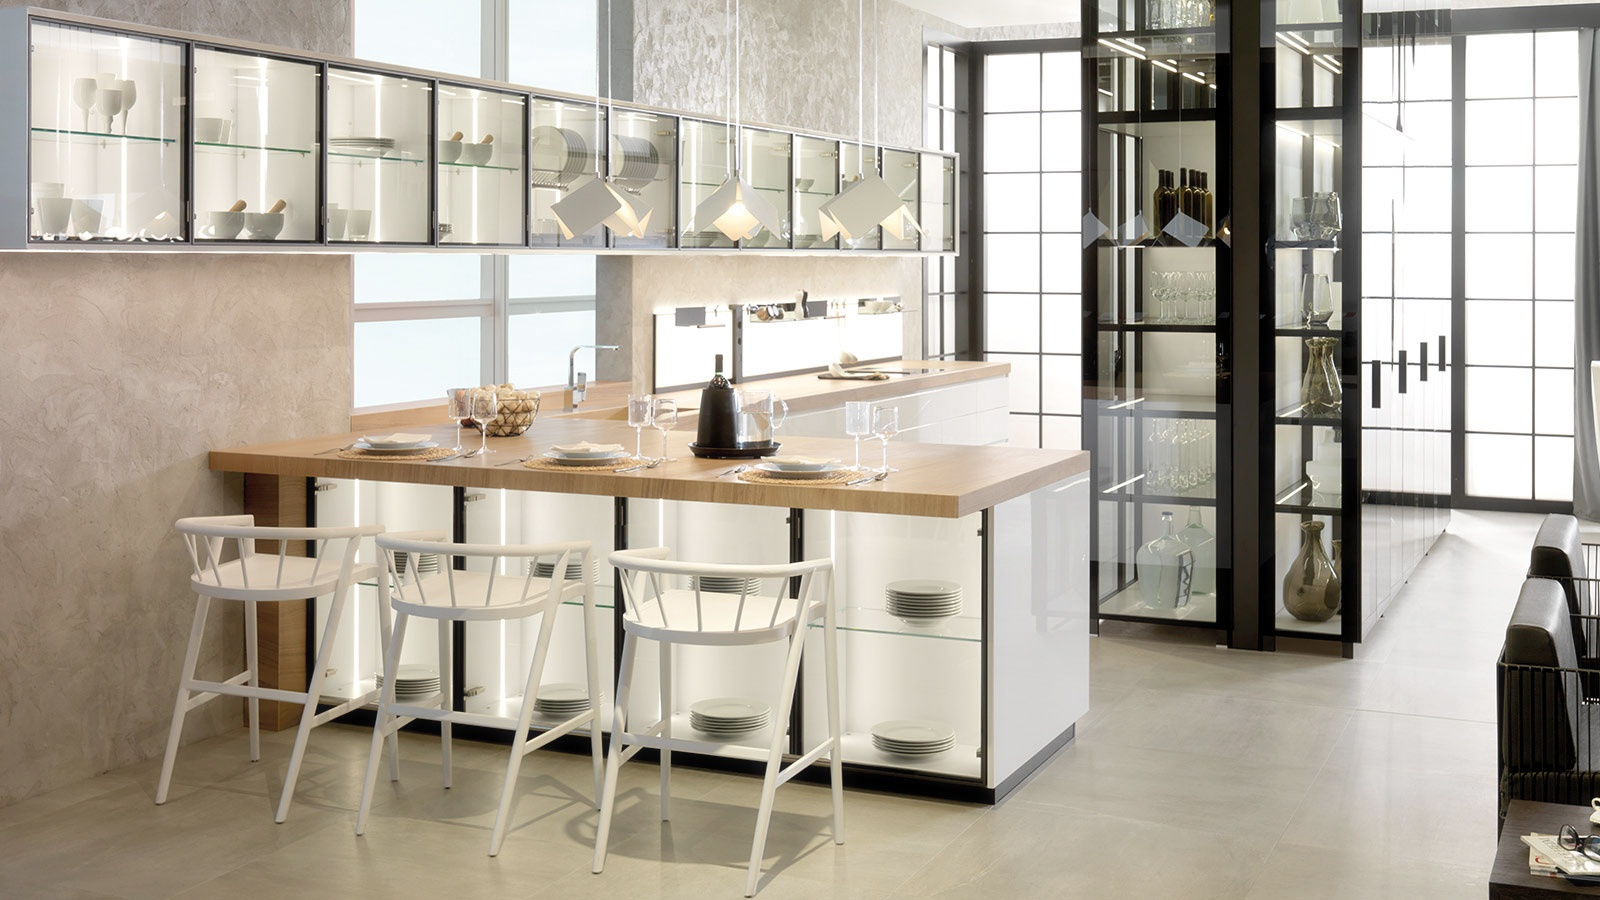 cocinas-modernas-diseno-ideas-cocina-isla-modern-kitchen-design-madrid-35